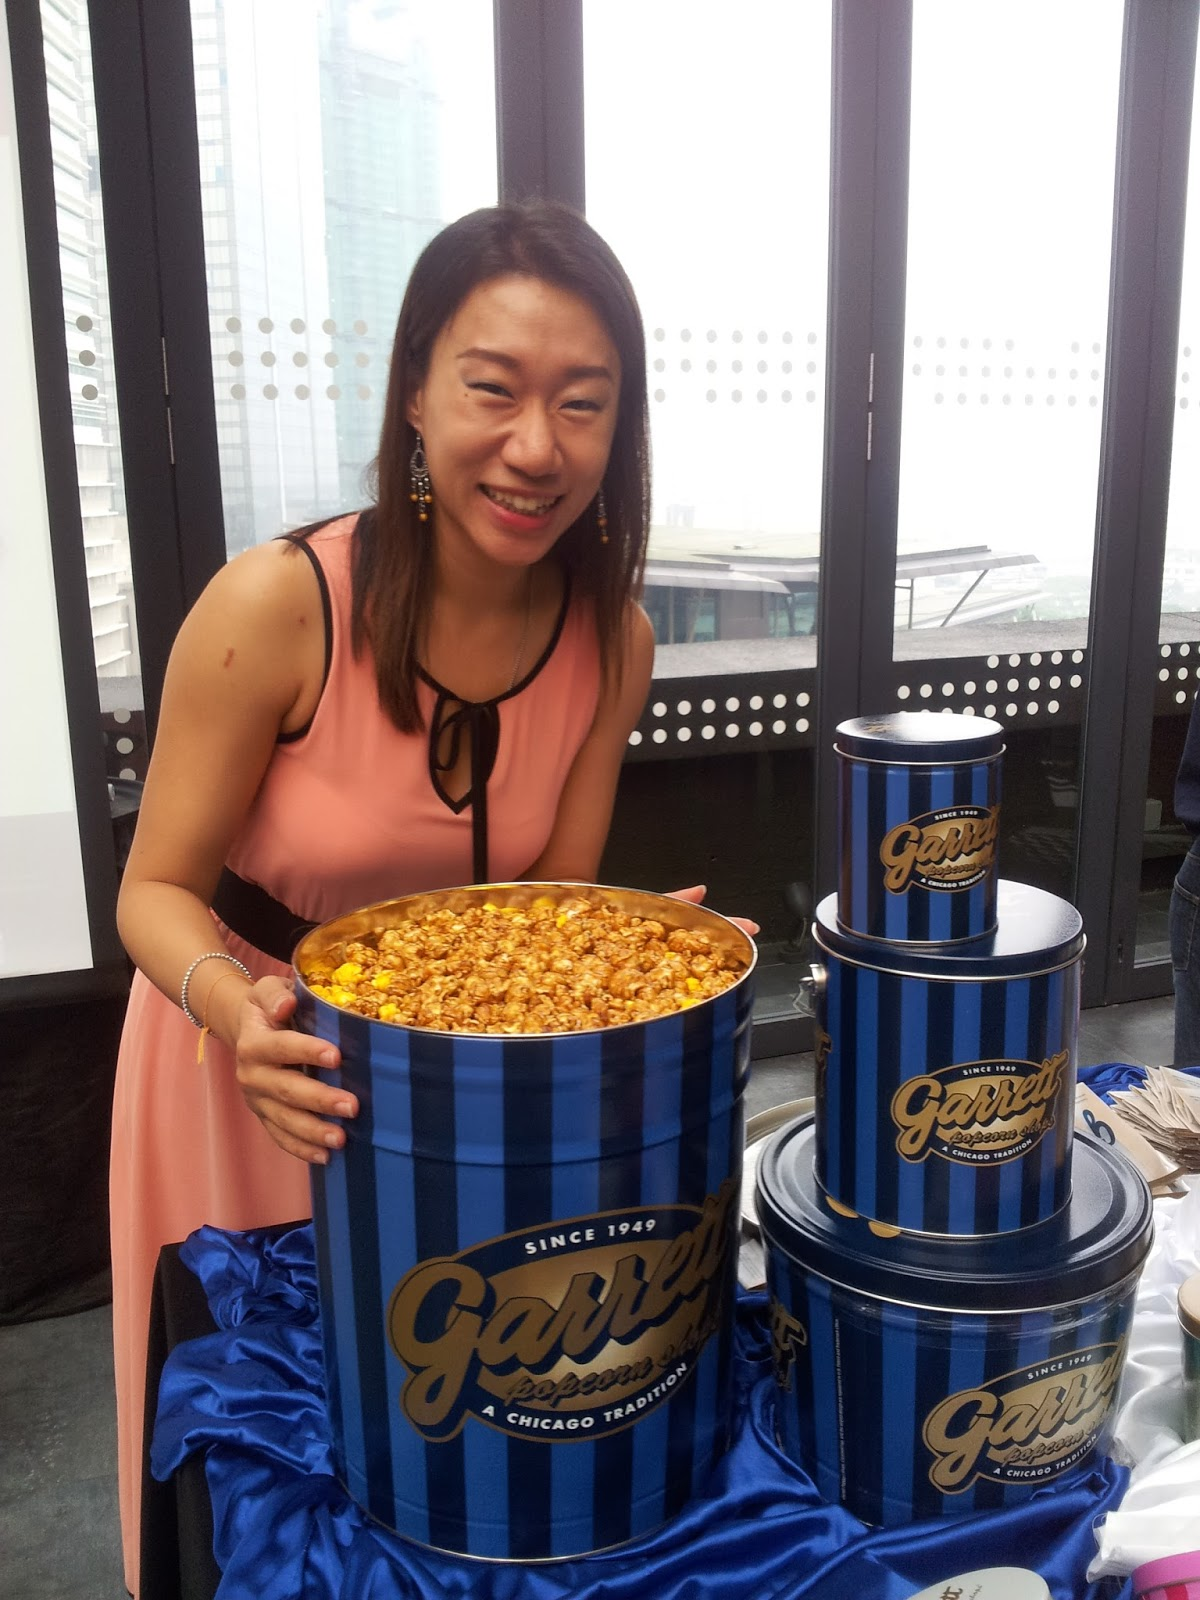 E Wen Hooi Garrett Popcorn Is 66 Years Old And Opening At